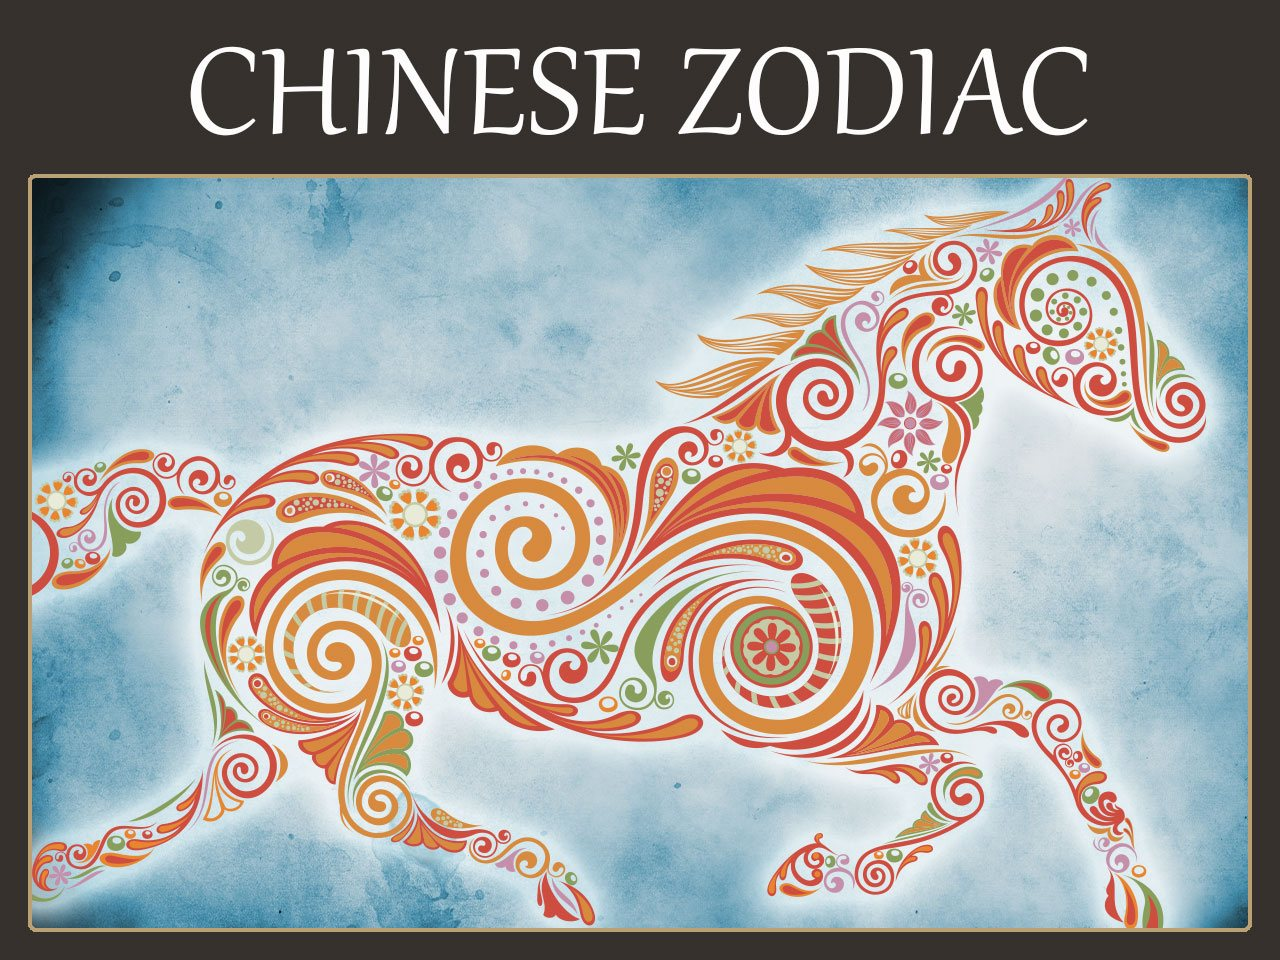 Chinese Zodiac Signs 1280x960